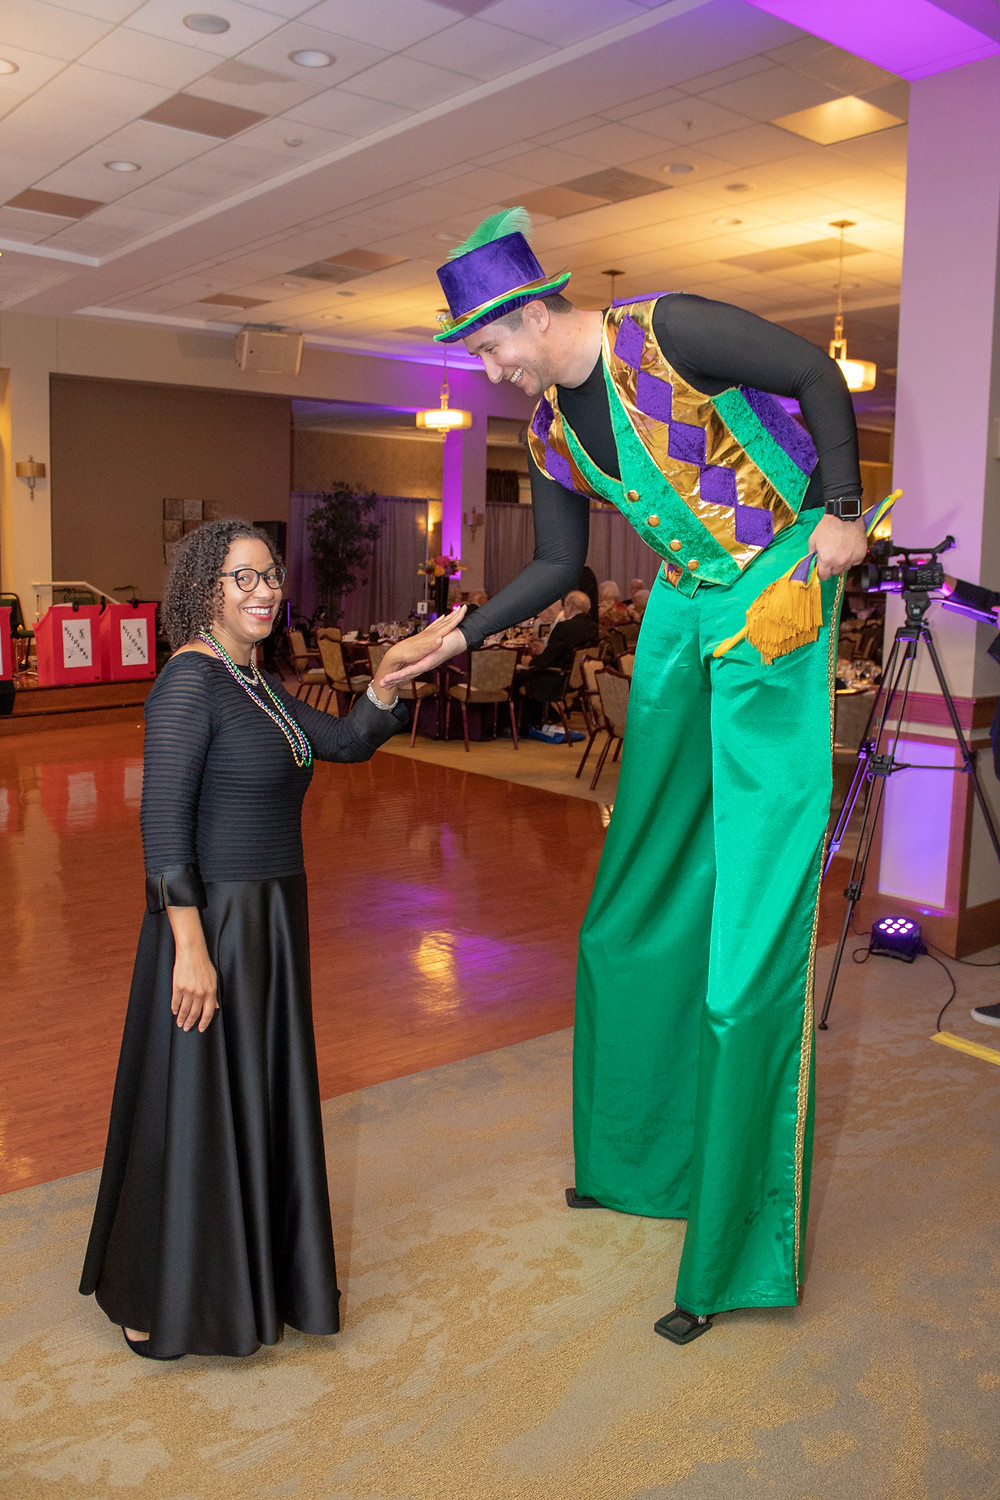 Photo: Associate Executive Director Dee Dee Gray-Weaver having some fun at the Riderwood Gala  (Photos: Chris Taydus)